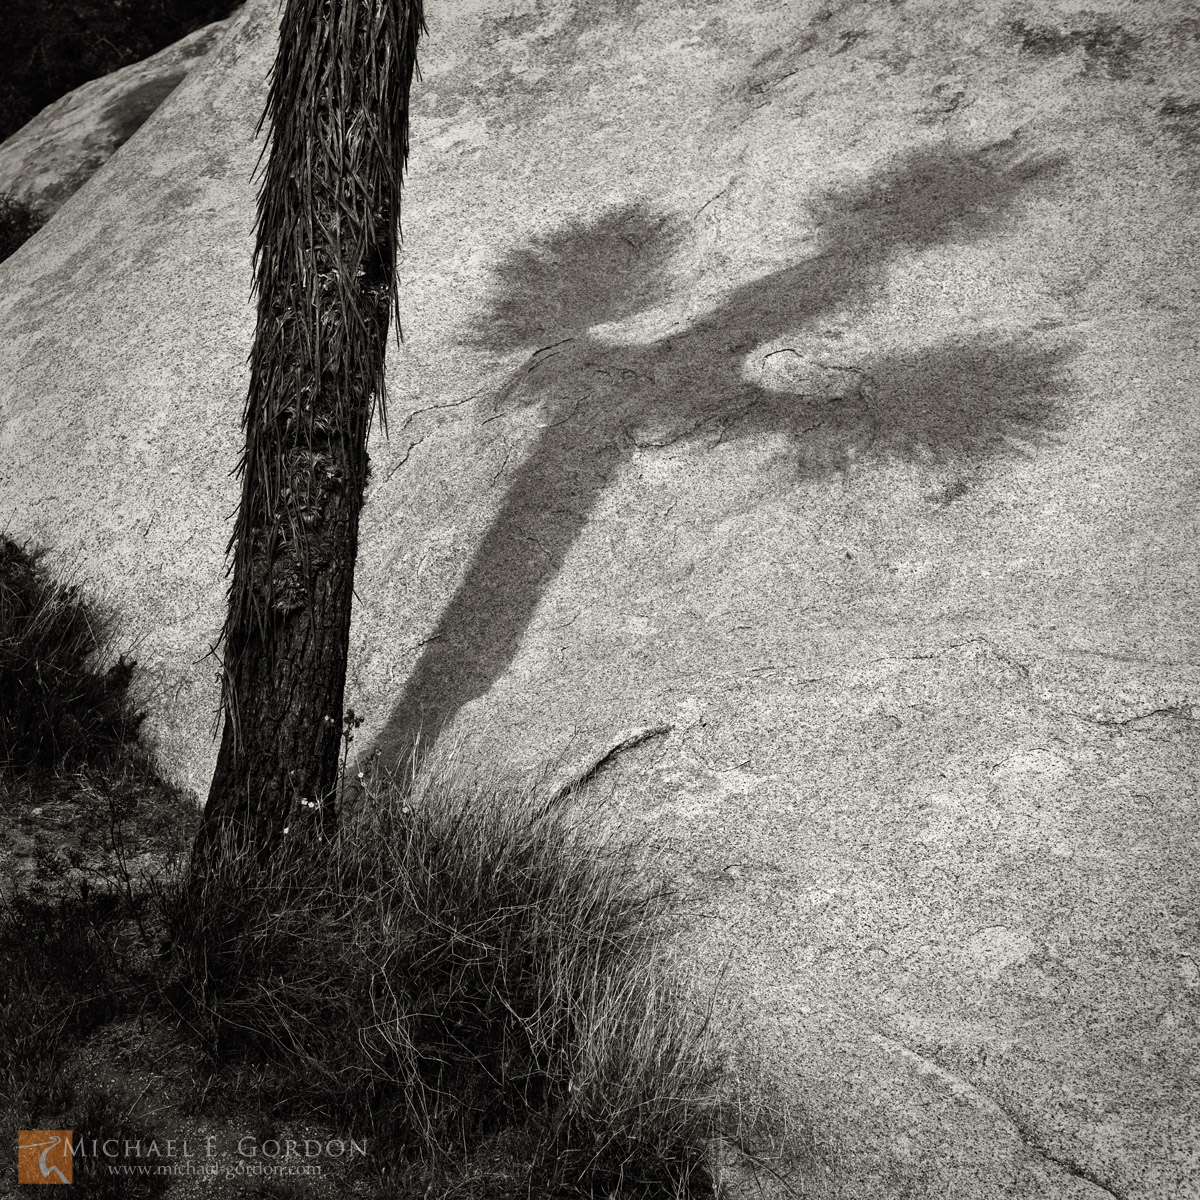 Joshua tree,Yucca brevifolia,shadow,cast,crucifix,cross,symbol,quartz monzonite,boulder,granite, photo